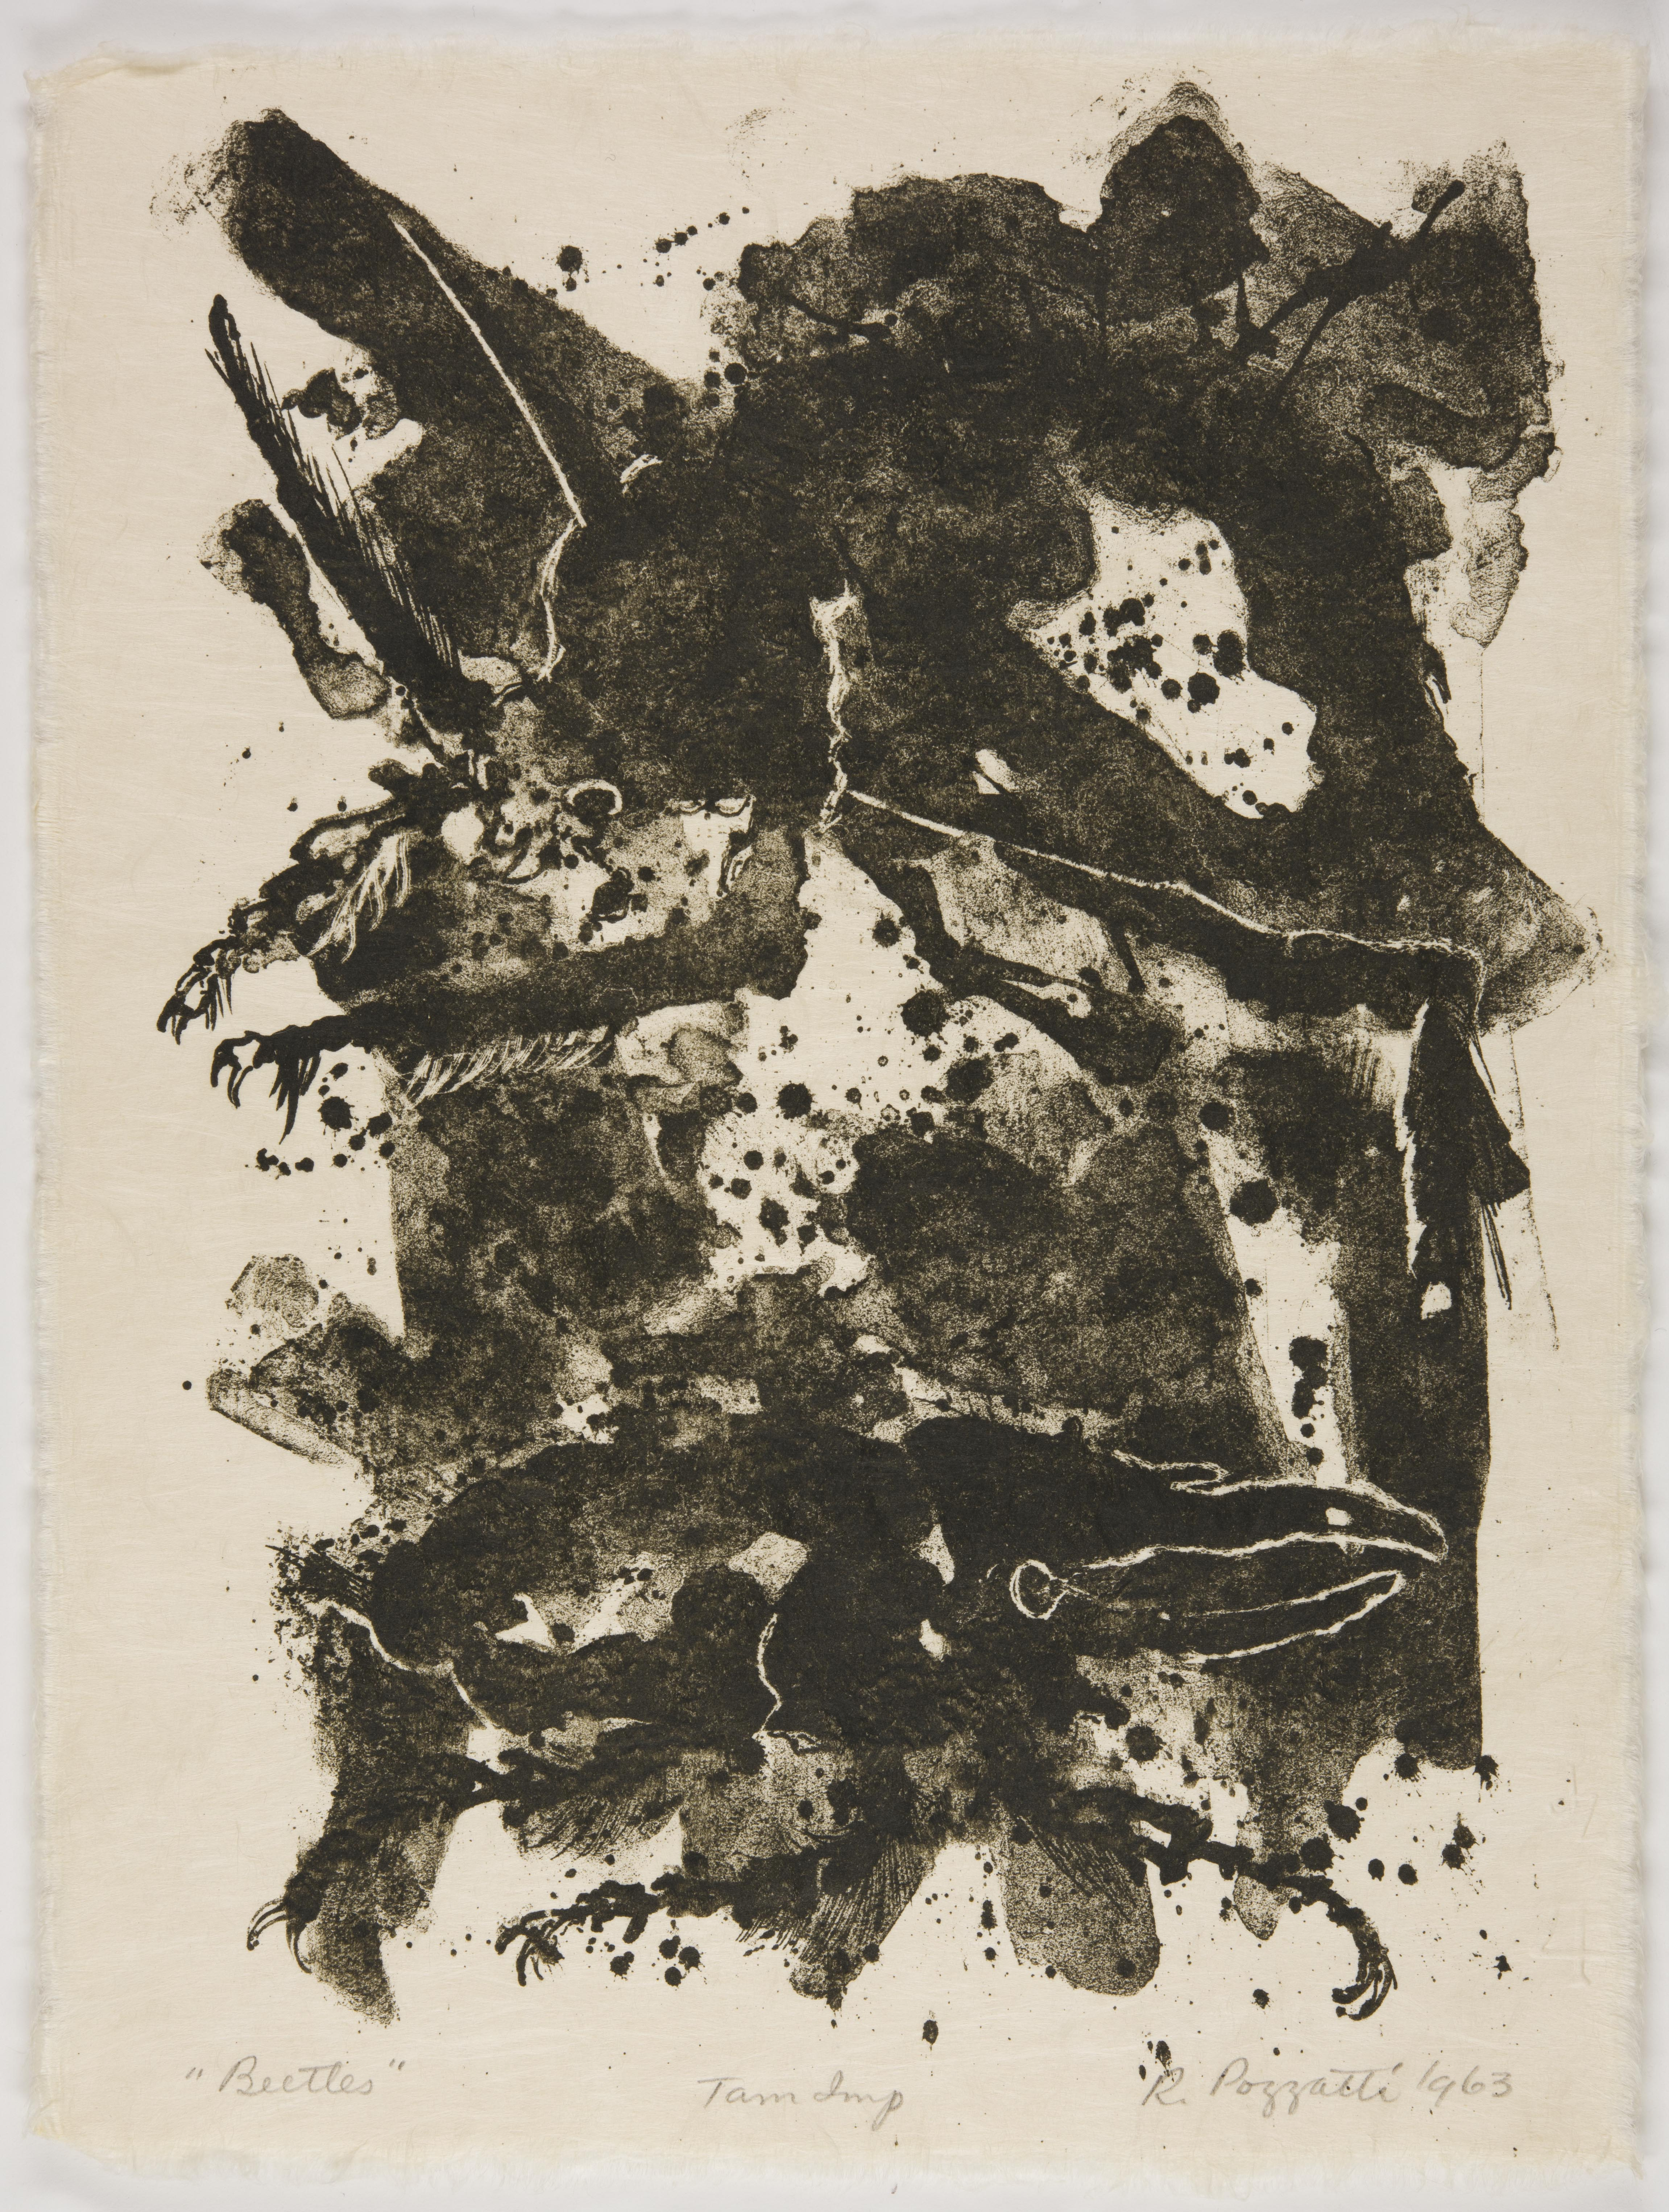 Rudy Pozzatti, Beetles (VII), March 21-25, 1963